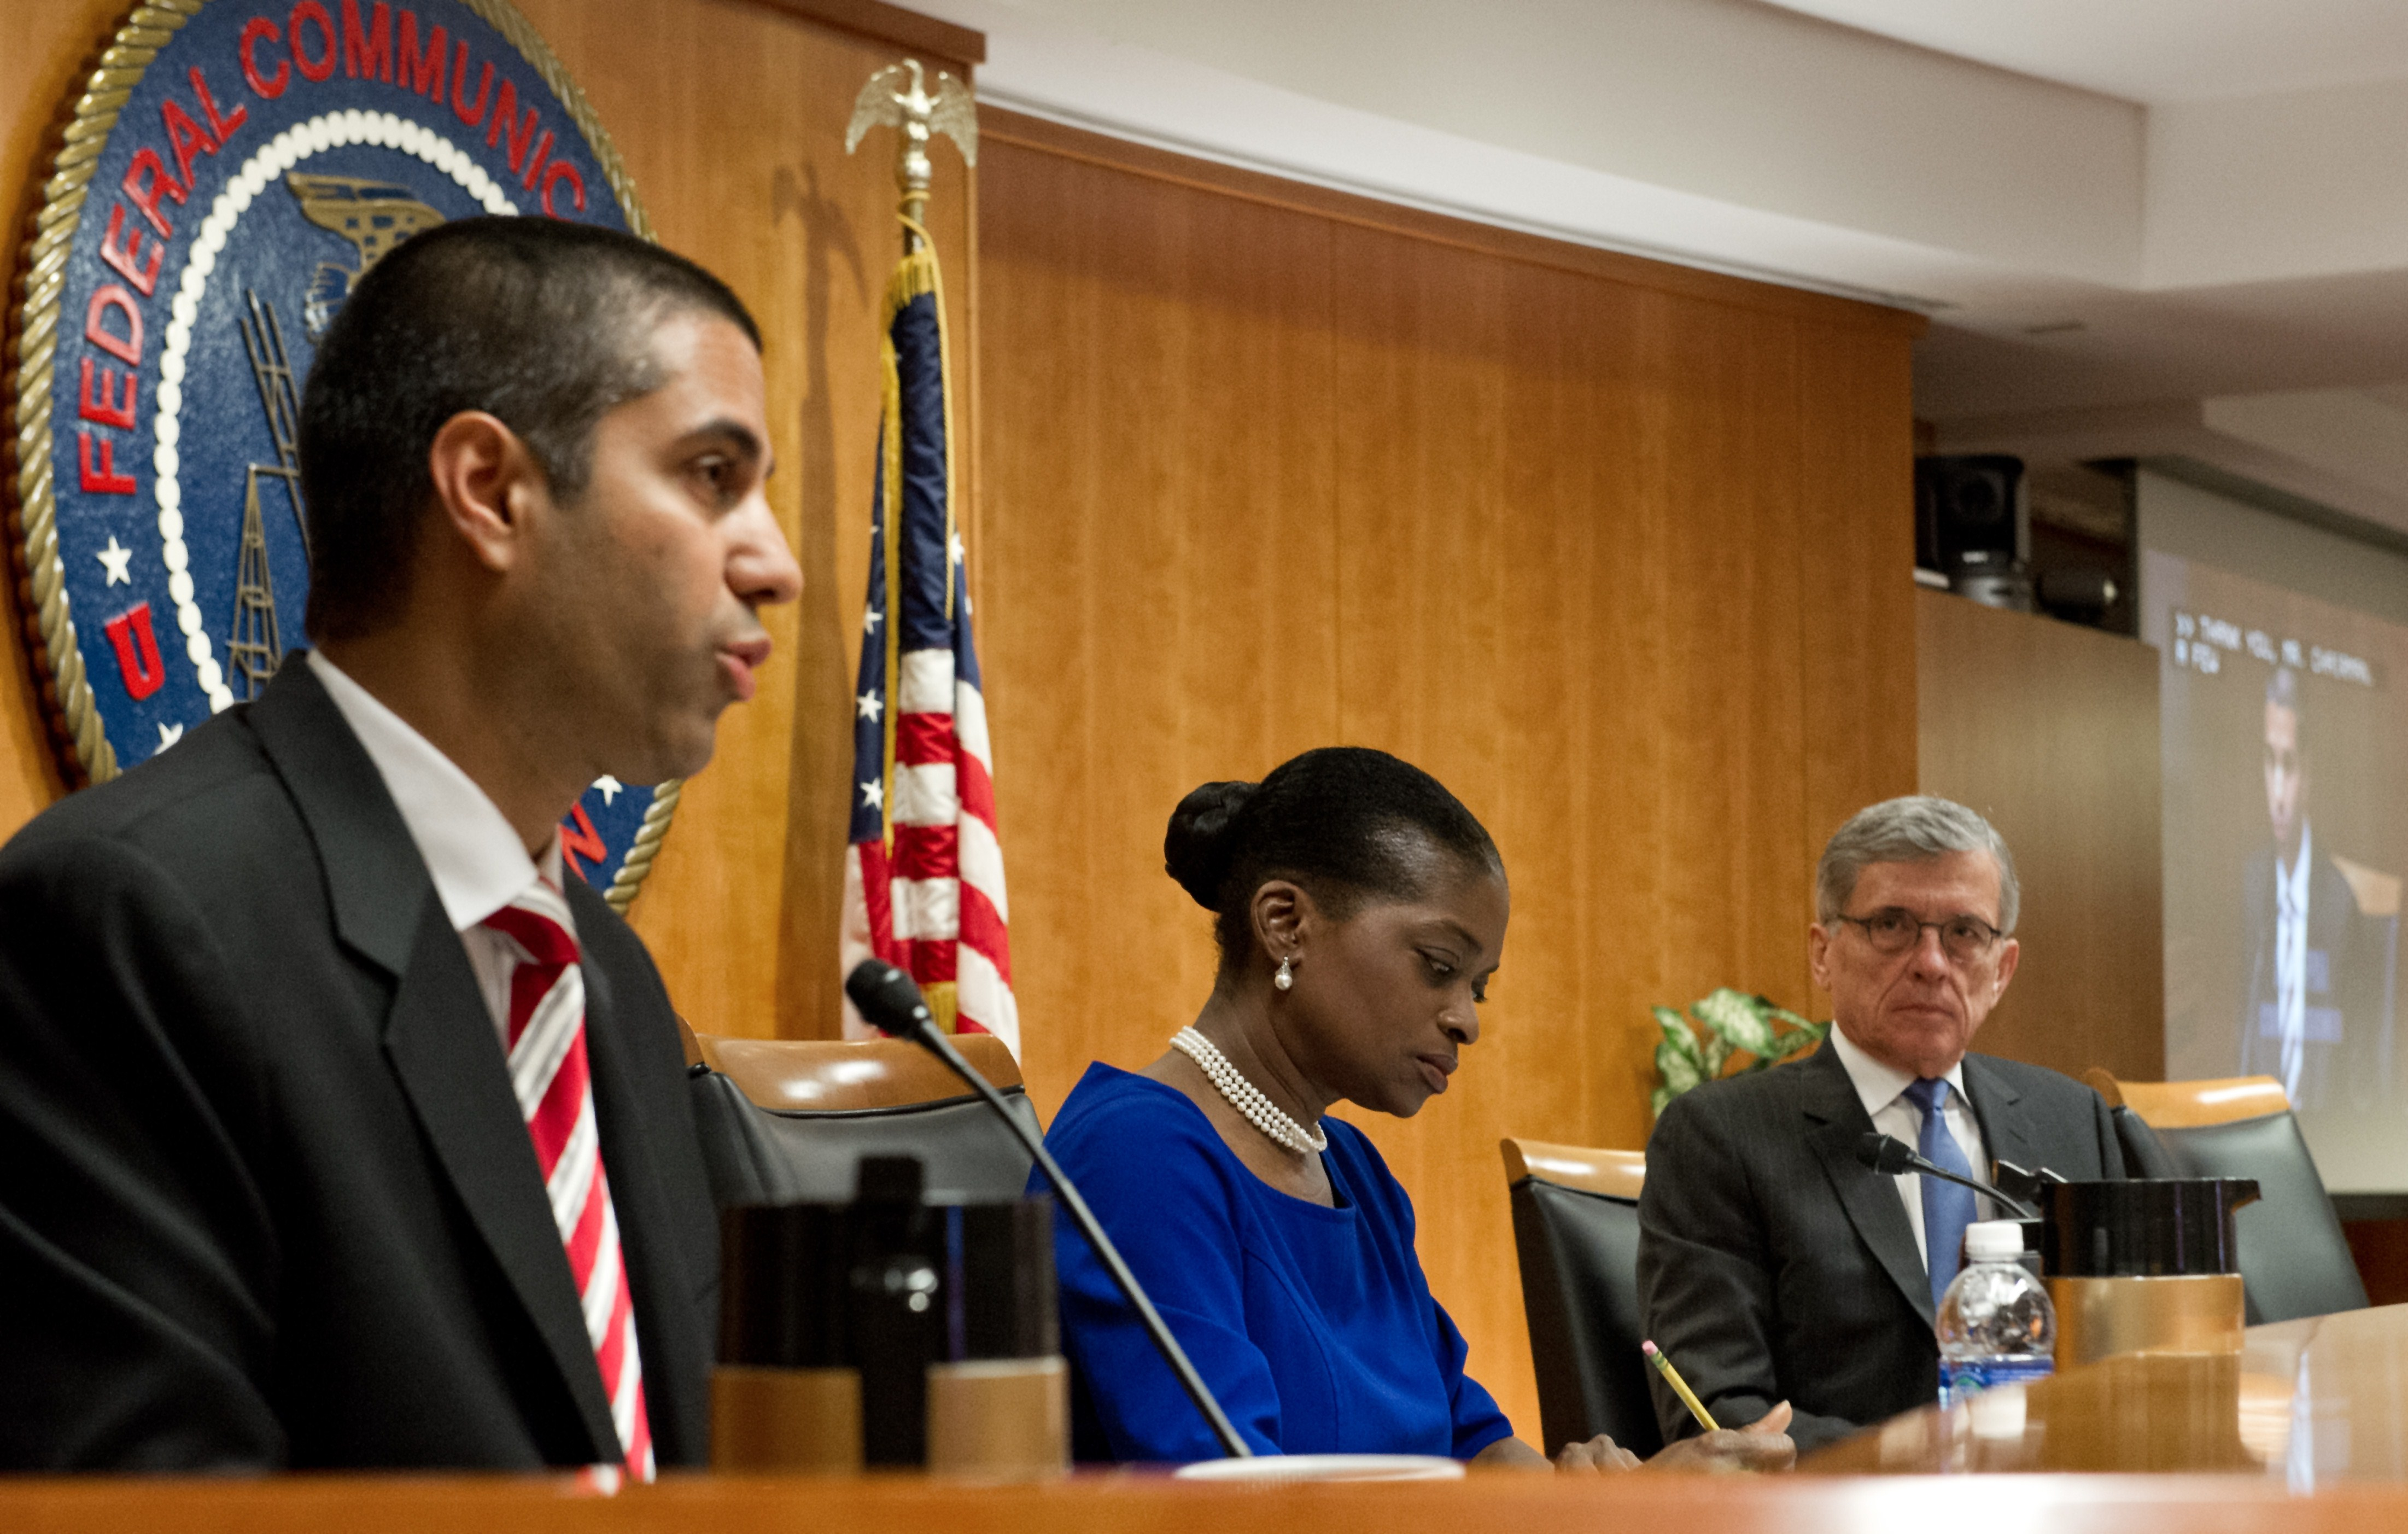 Rep. Agit Pai, pictured left, with FCC chairman Tom Wheeler giving him an appropriate stare-down. (Photo: Getty)